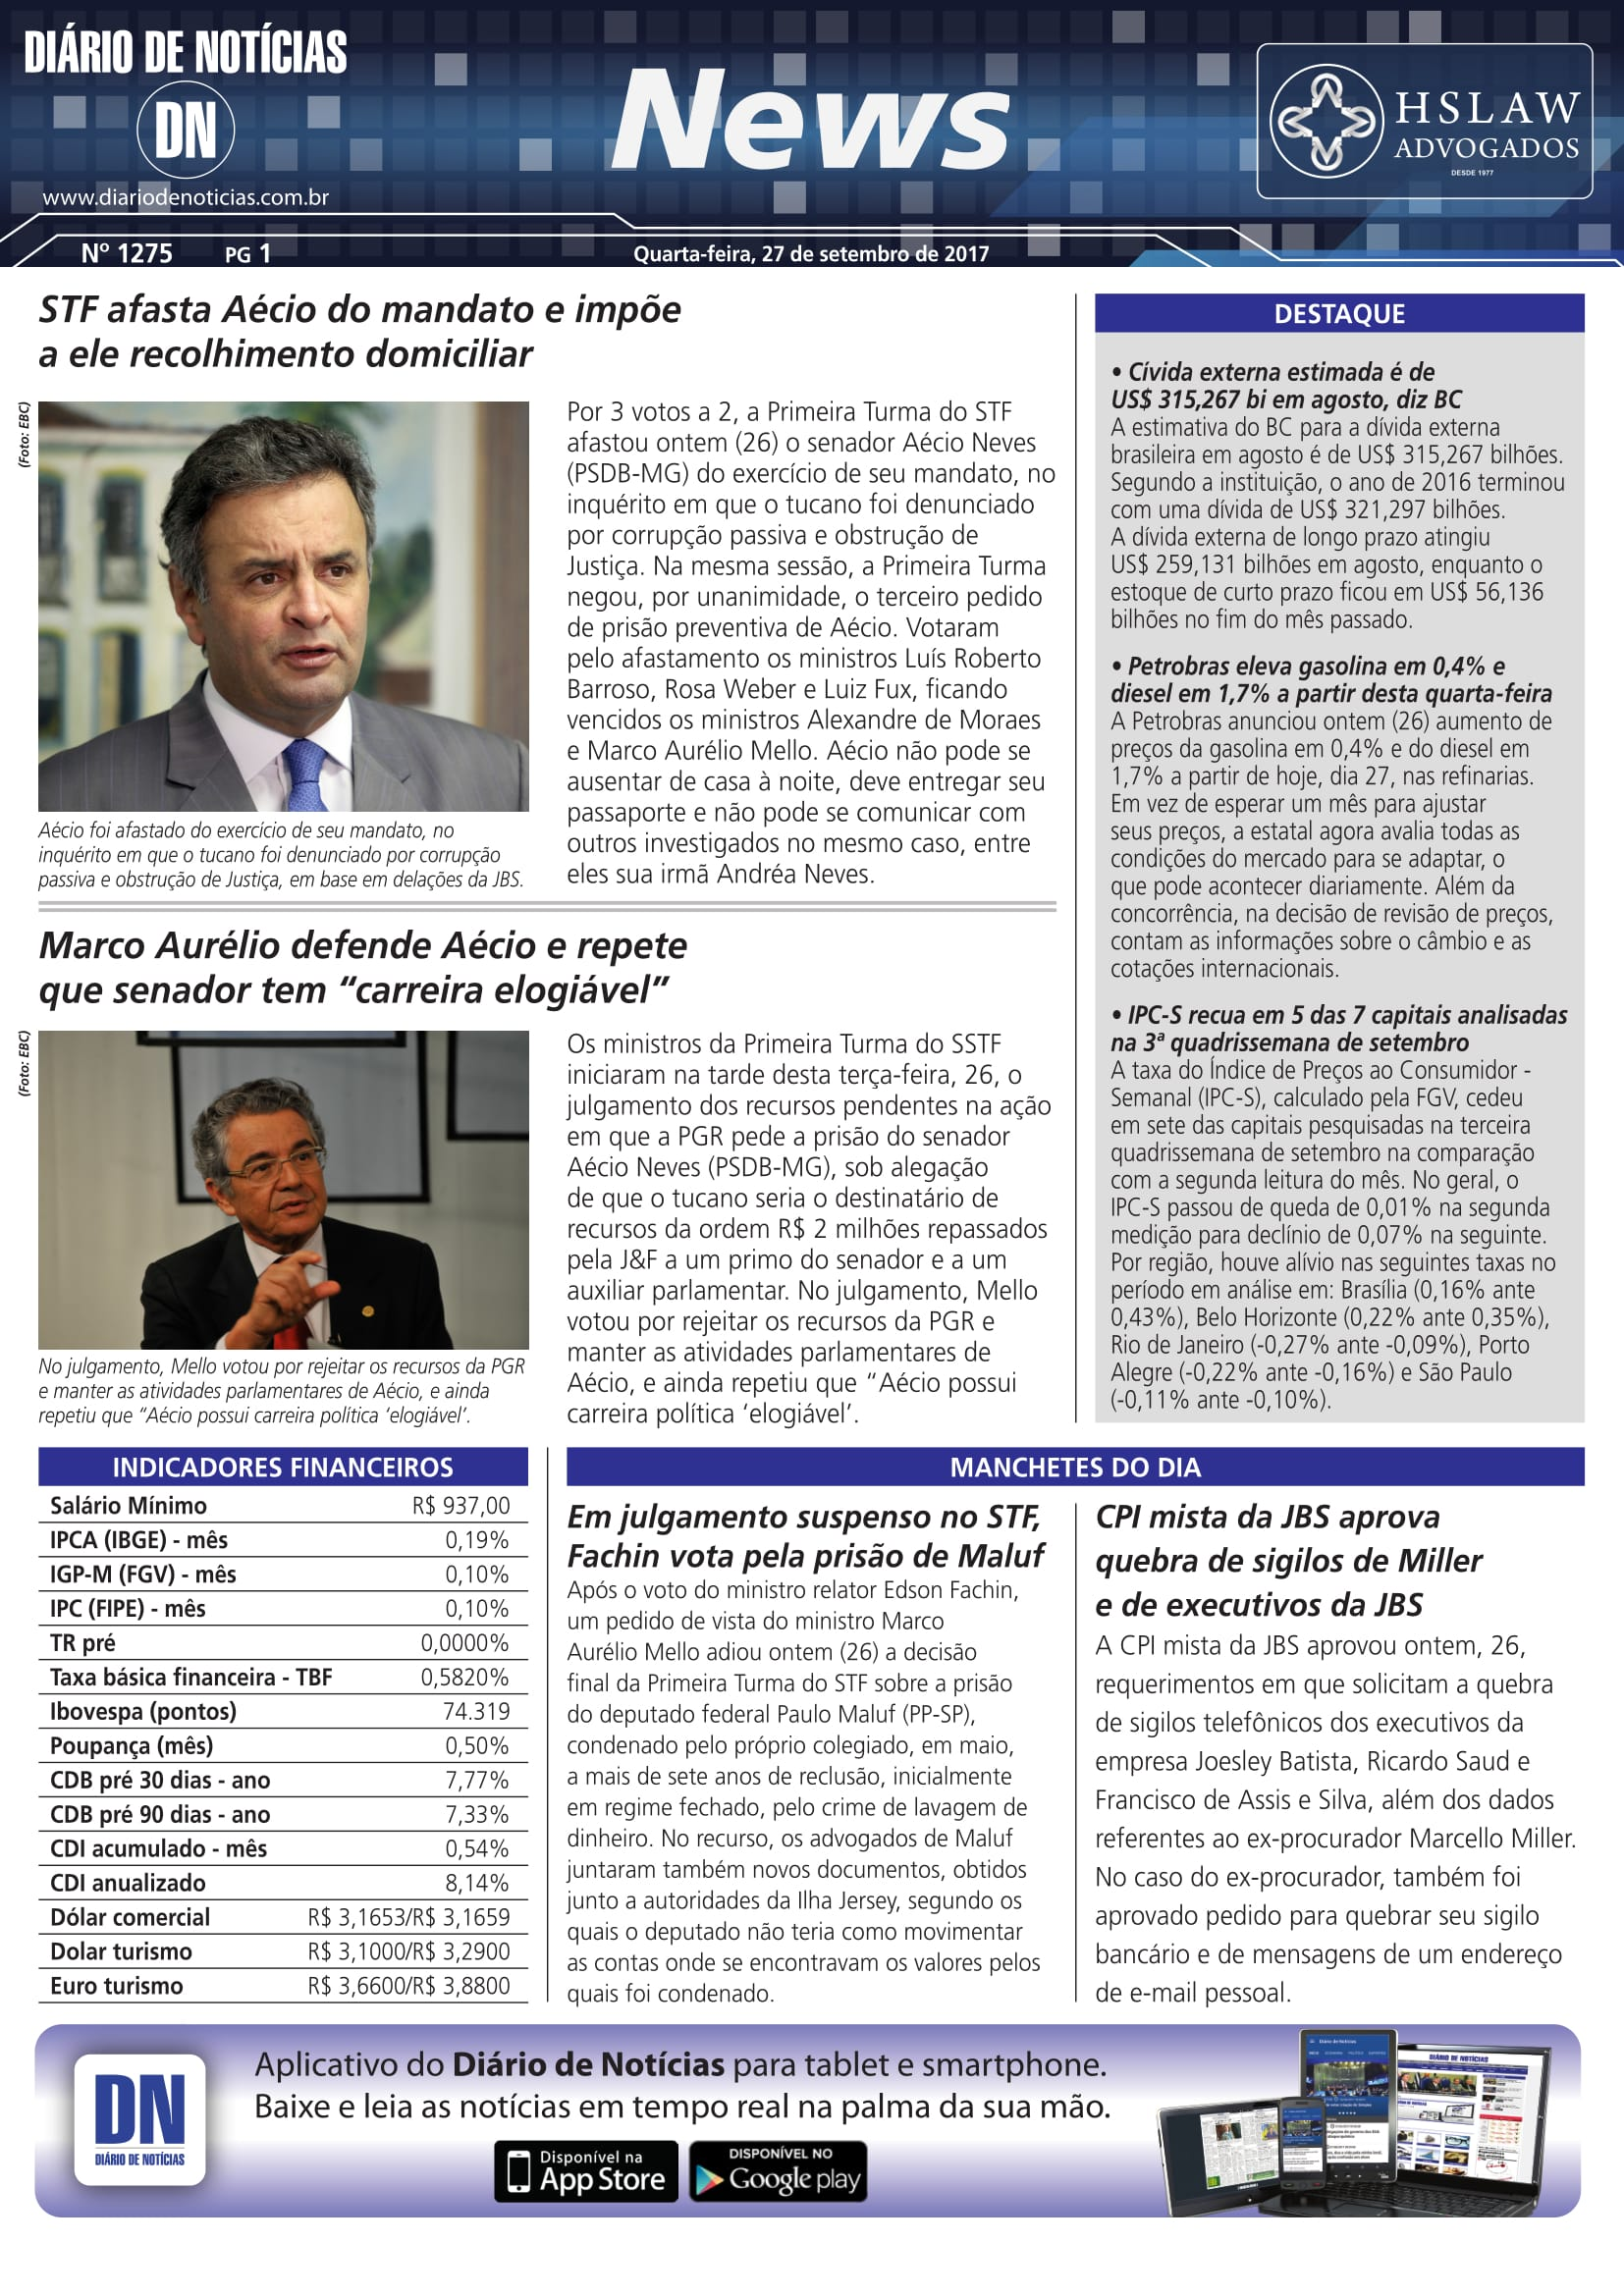 NewsPaper_1275_DN_270917-1